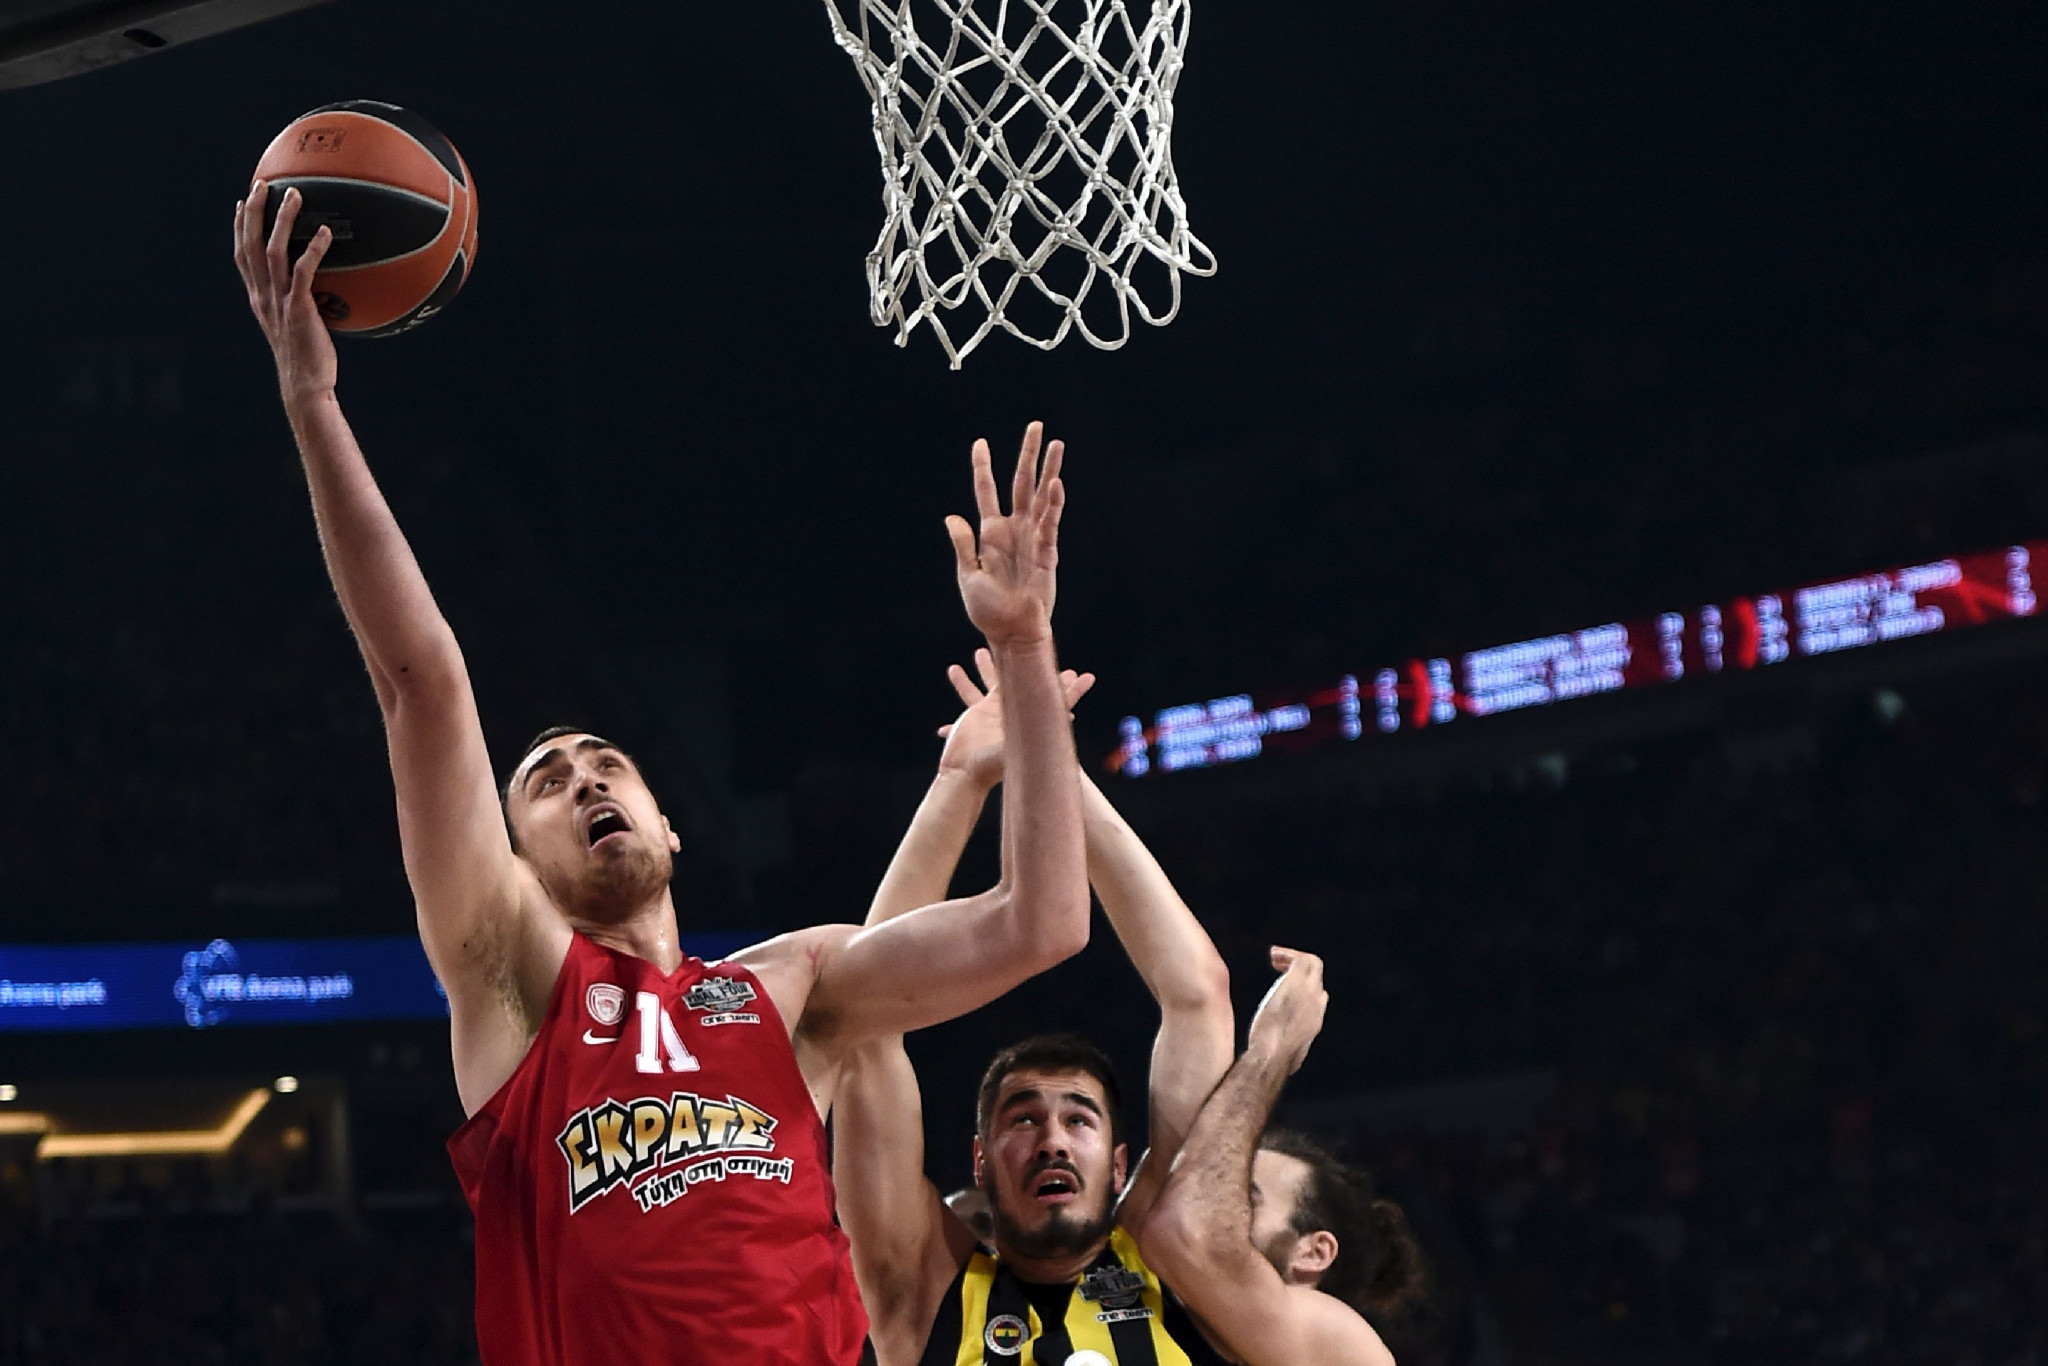 FIBA and the Euroleague have been involved in a protracted dispute over the 2017-2018 international calendar ©Getty Images